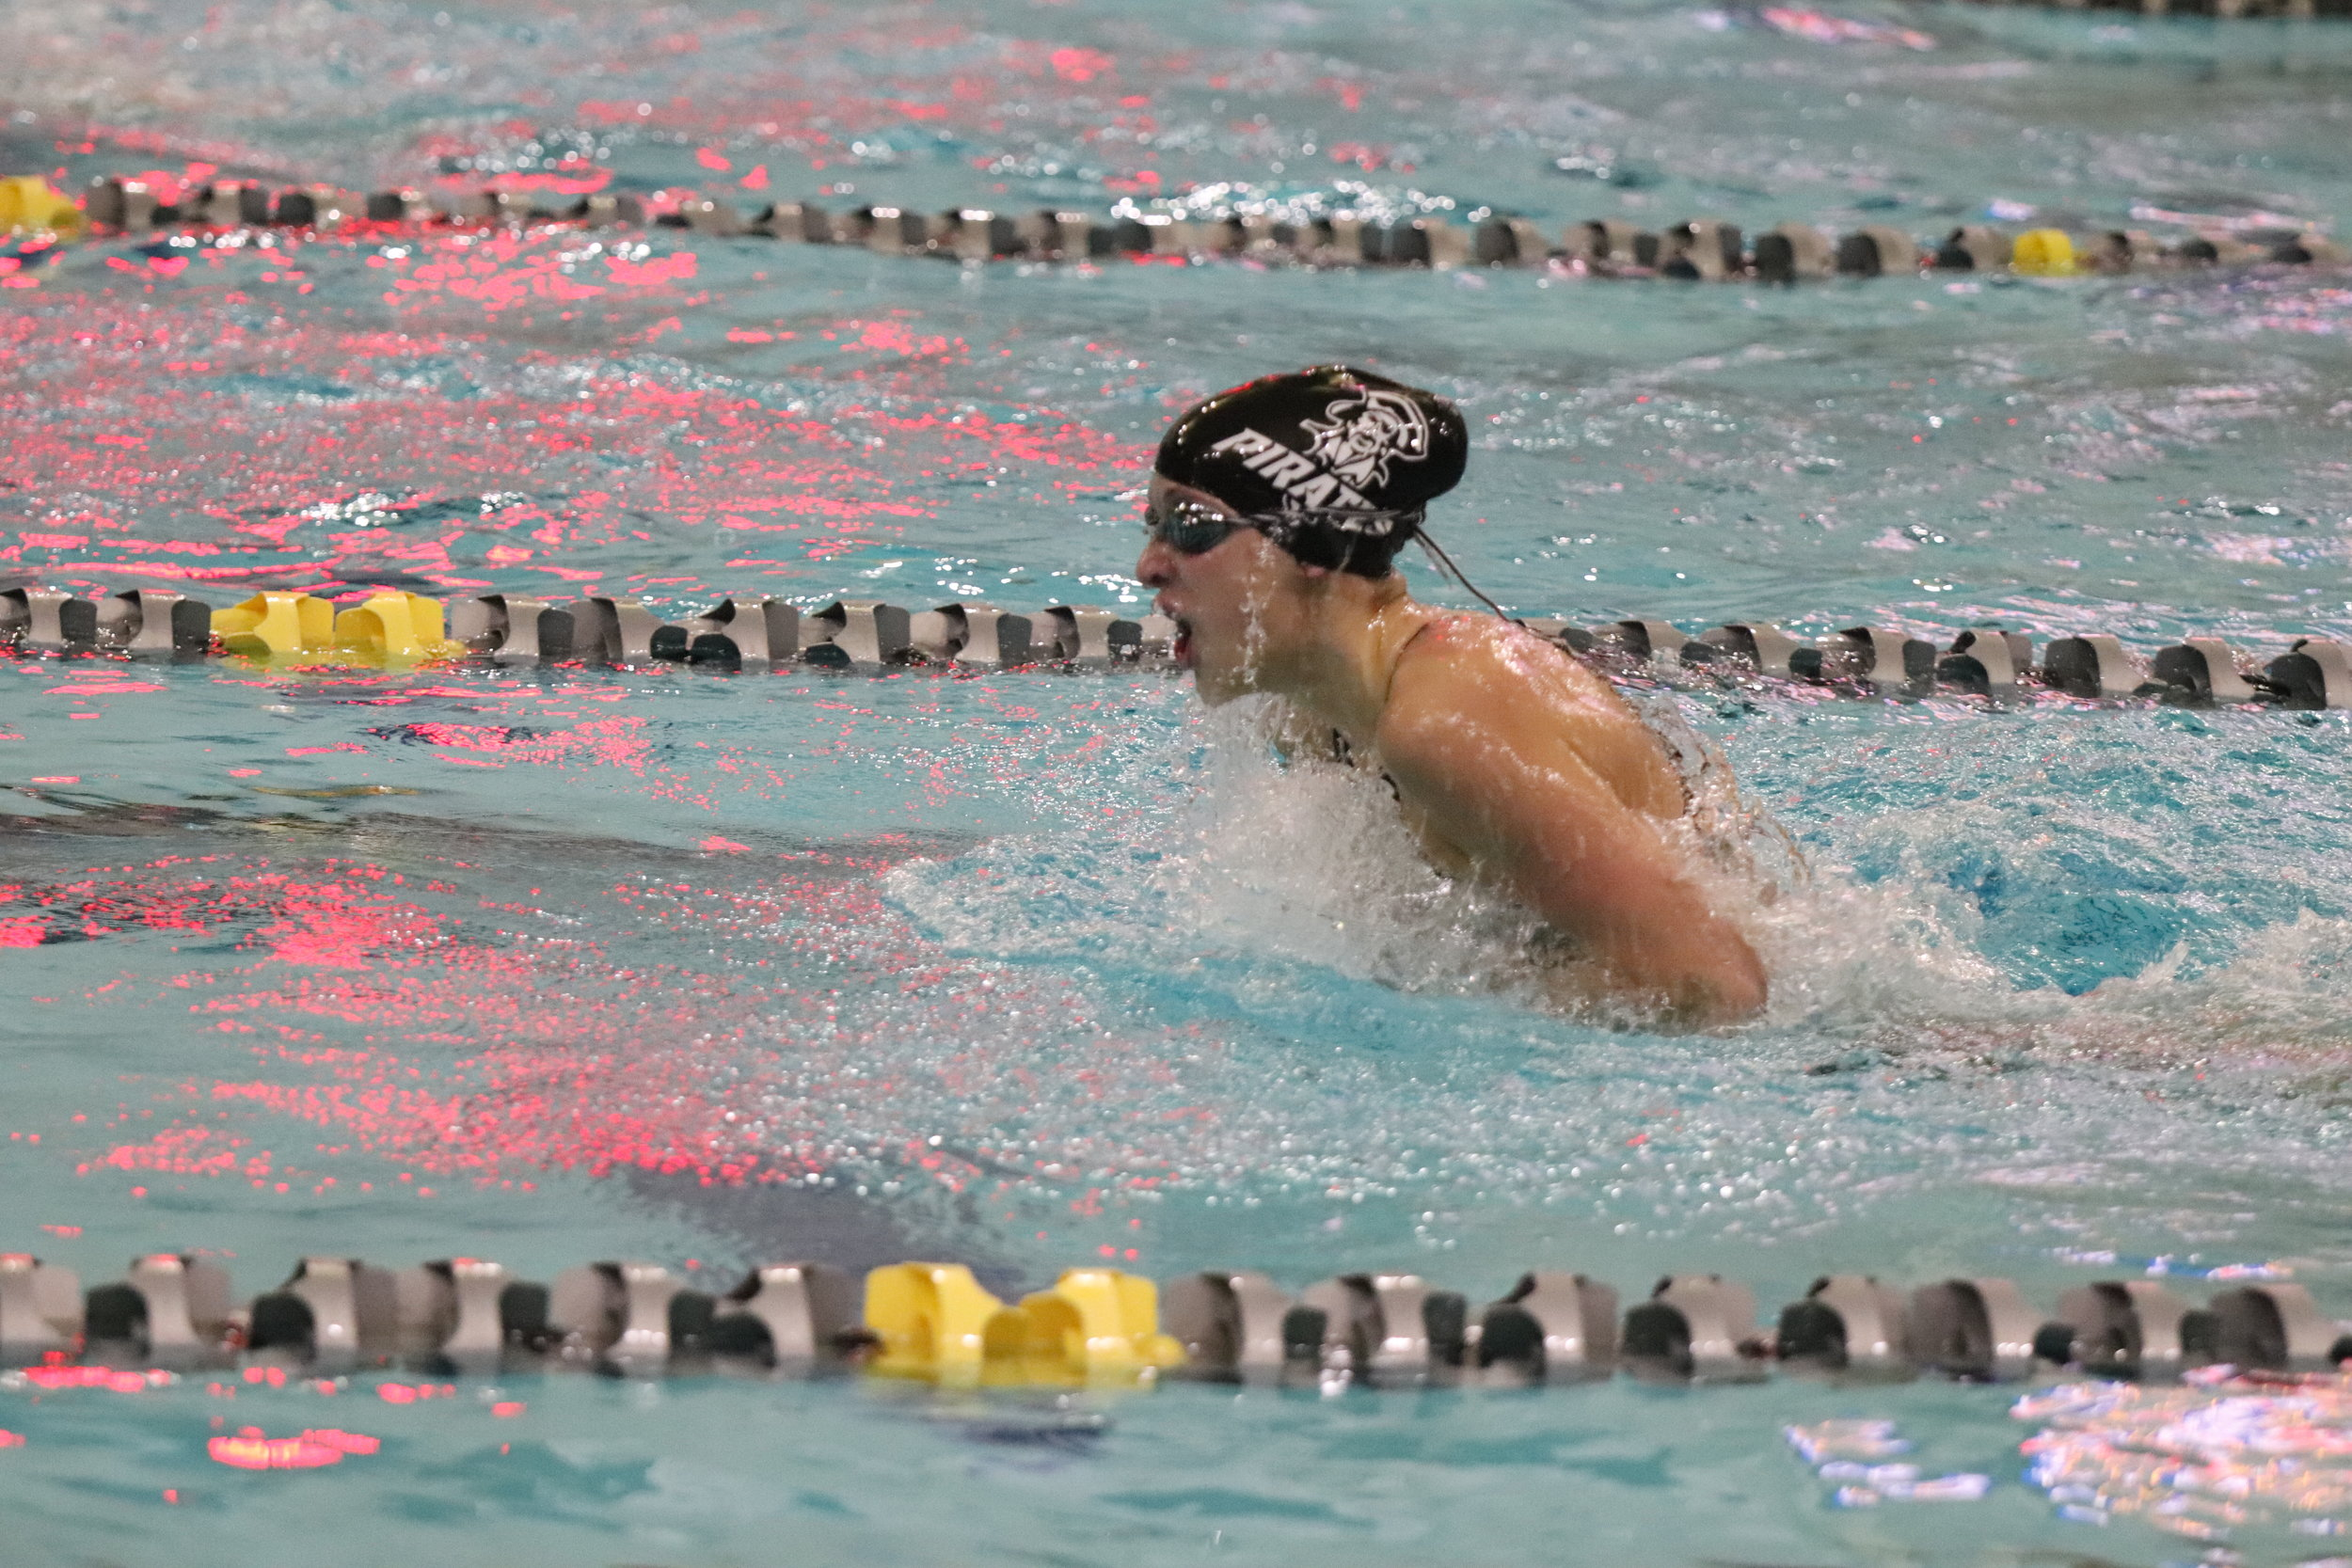 CODY THORN/Citizen photo Platte County's Maddie Klippenstein took 12th place in the 100-yard breaststroke. Here, she is show competing in the prelims on Friday, Feb. 15 at the St. Peters Rec-Plex in St. Peters, Mo. She is now a two-time consolation finalist for the Pirates.